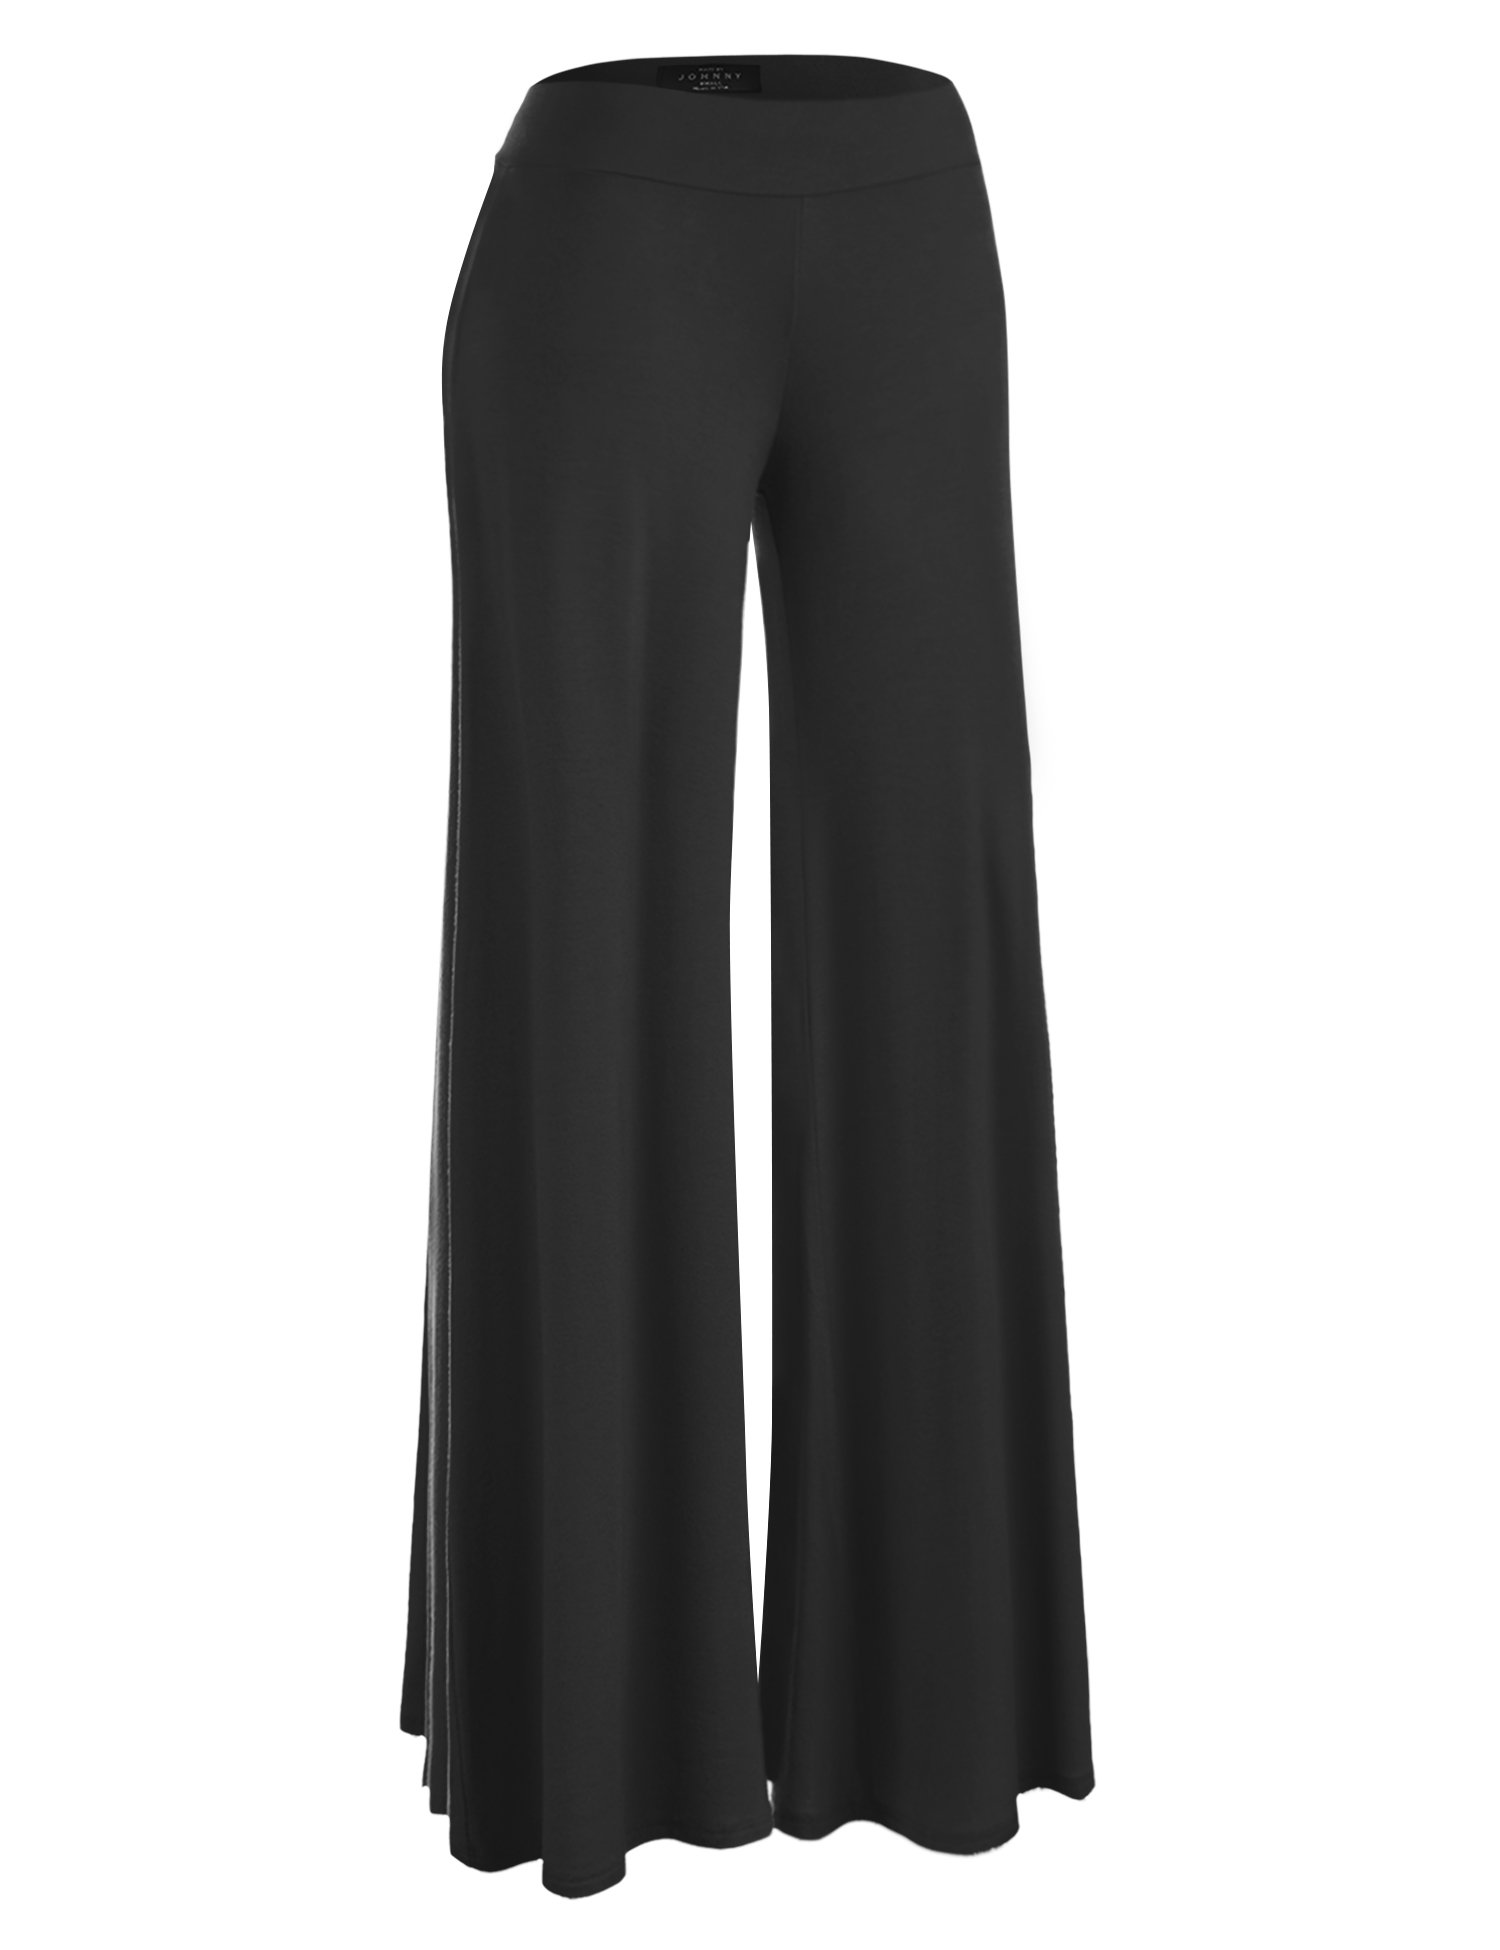 Made By Johnny WB1104 Womens Wide Leg Palazzo Lounge Pants L Black